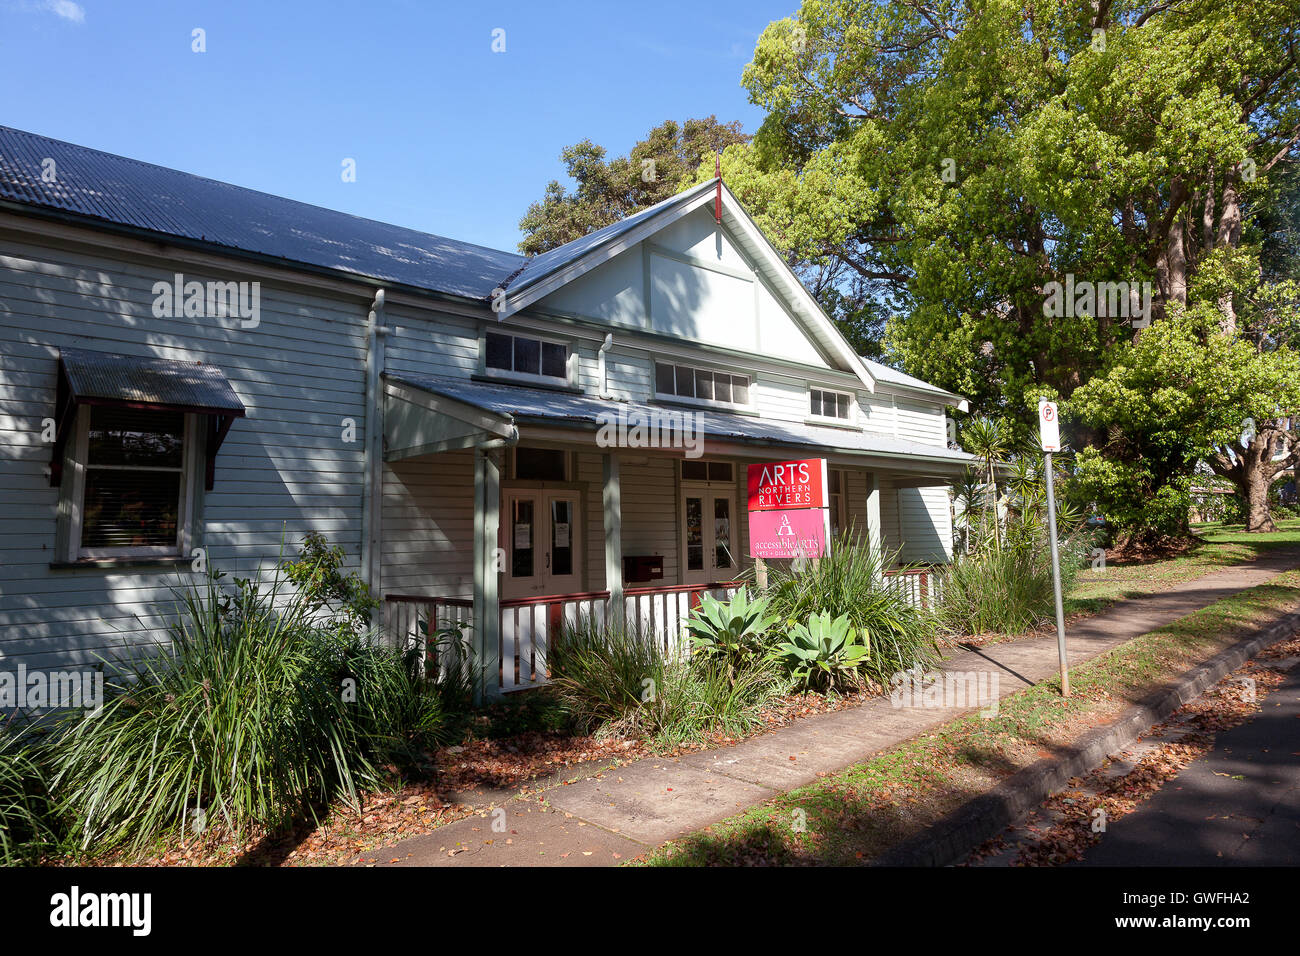 Arts Northern Rivers, Alstonville, NSW, Australia - Stock Image